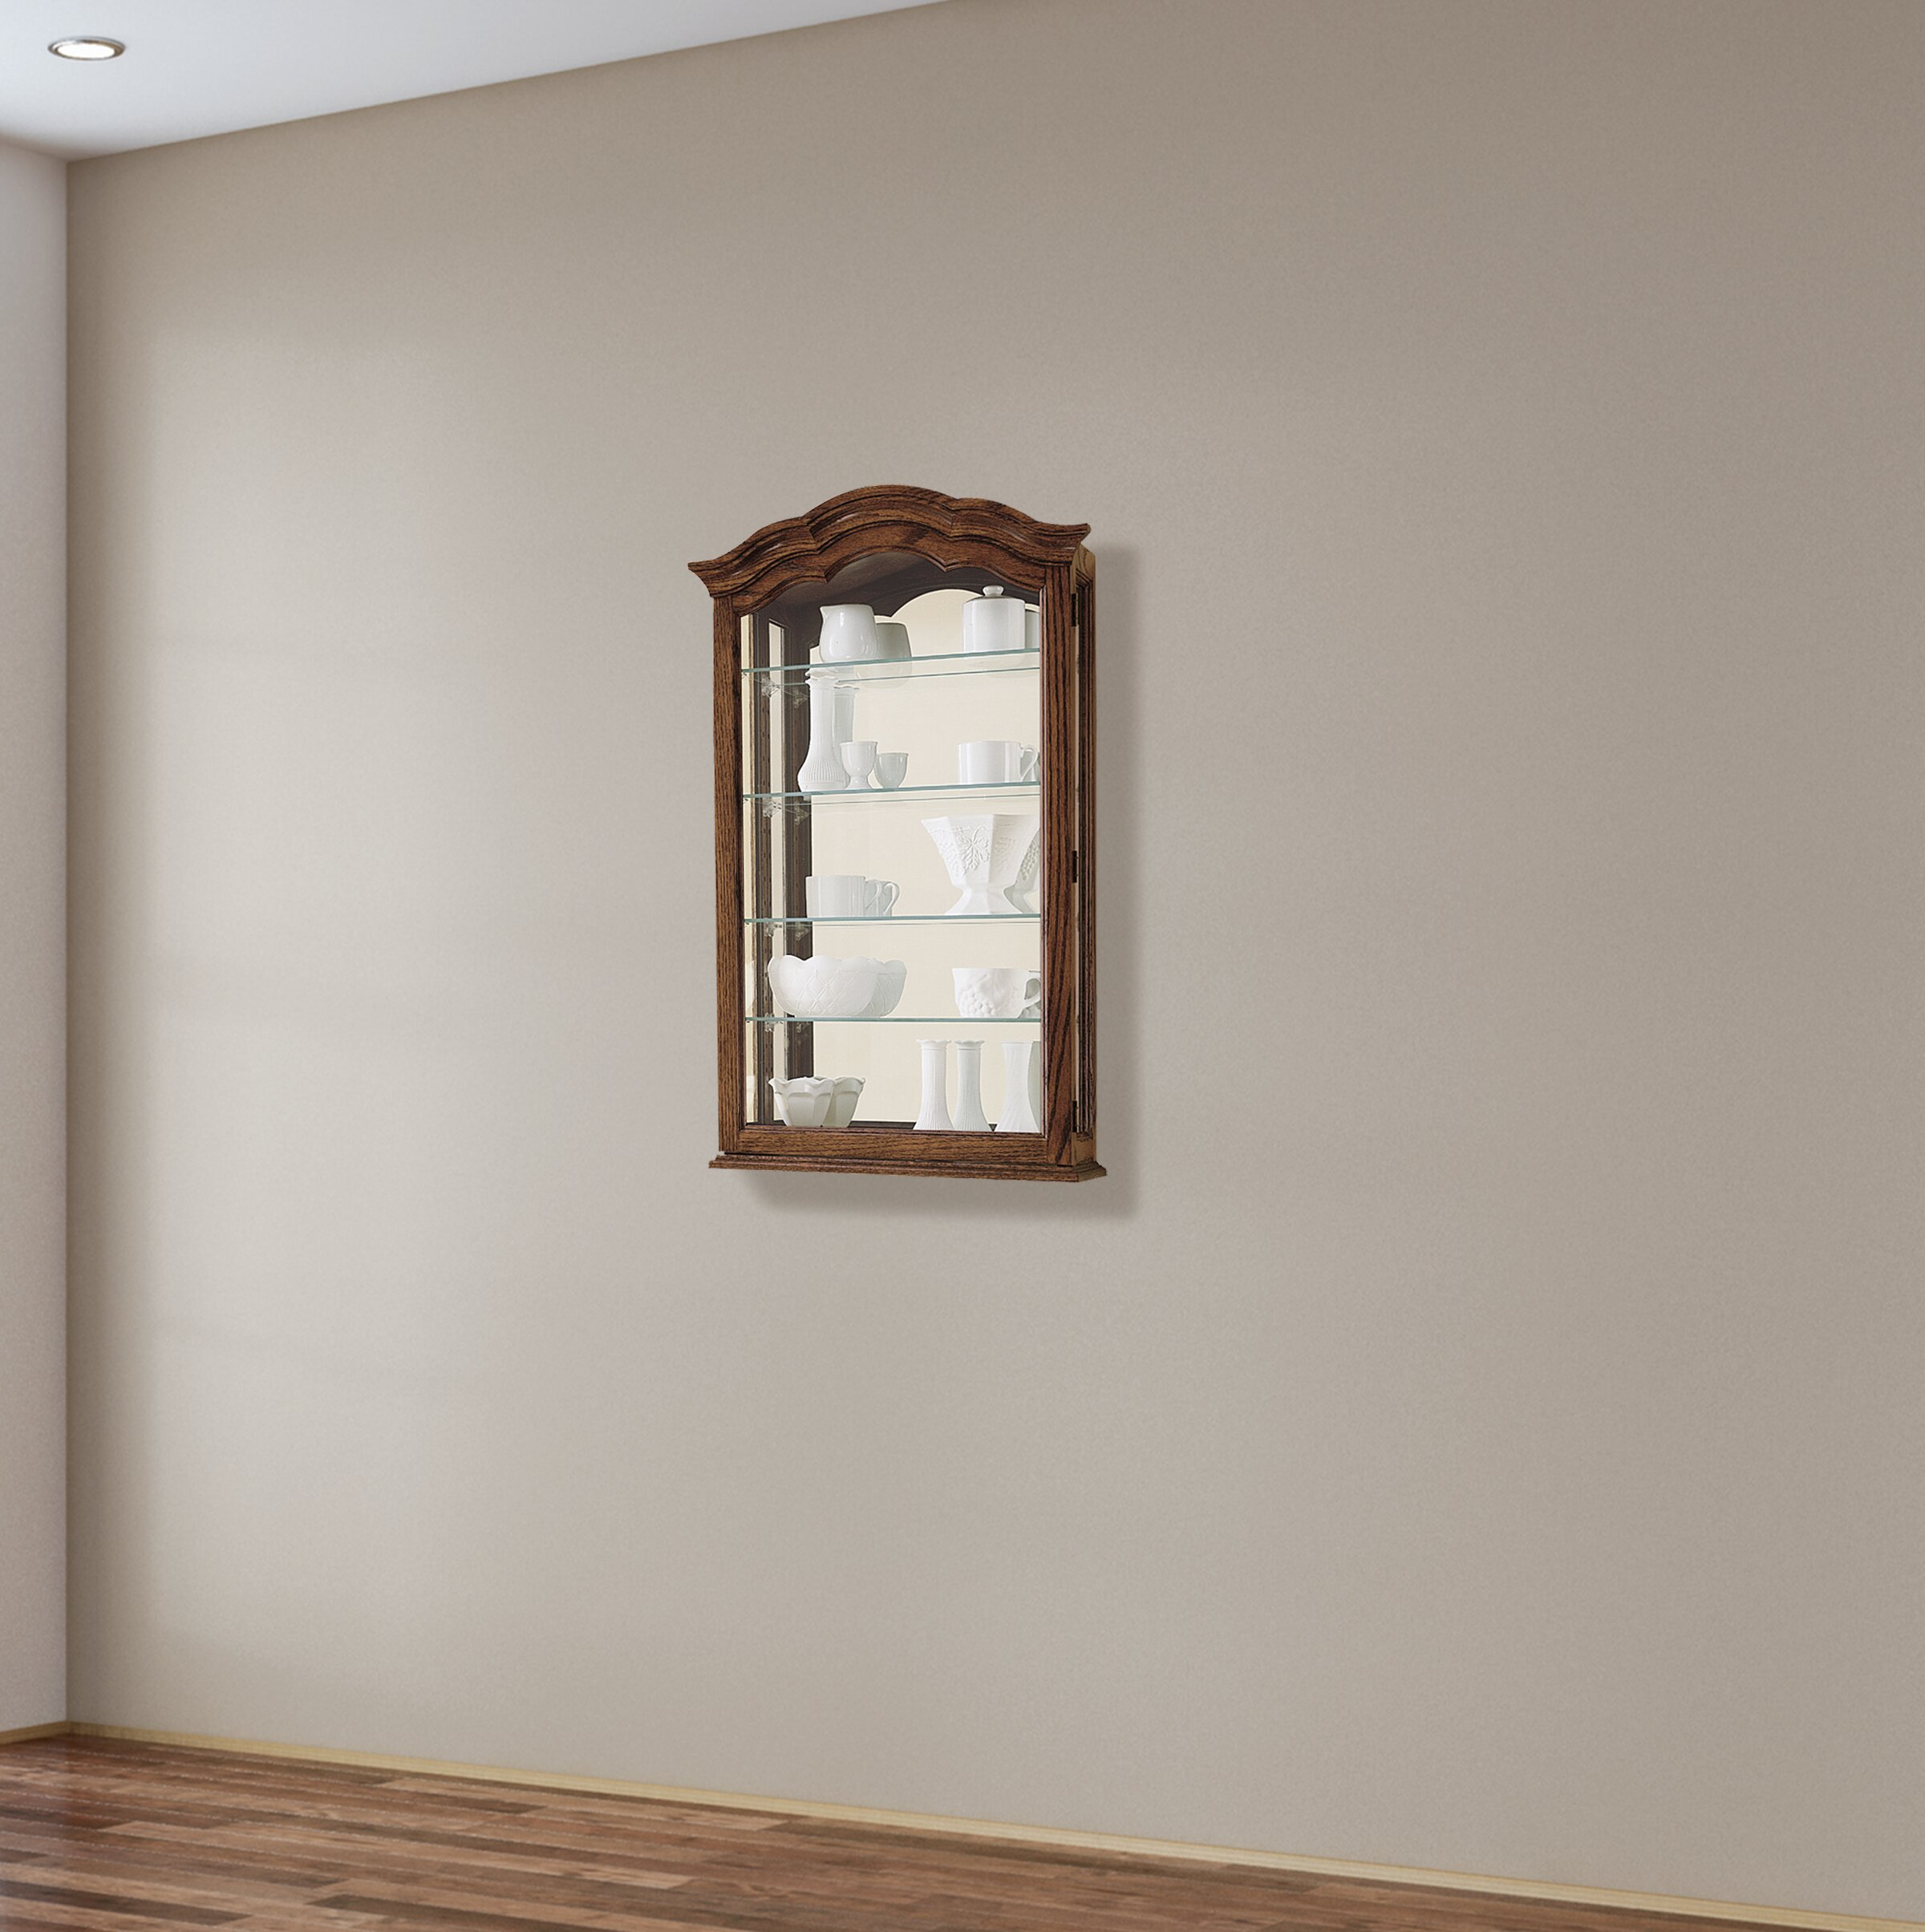 Brammer Wall Mounted Curio Cabinet